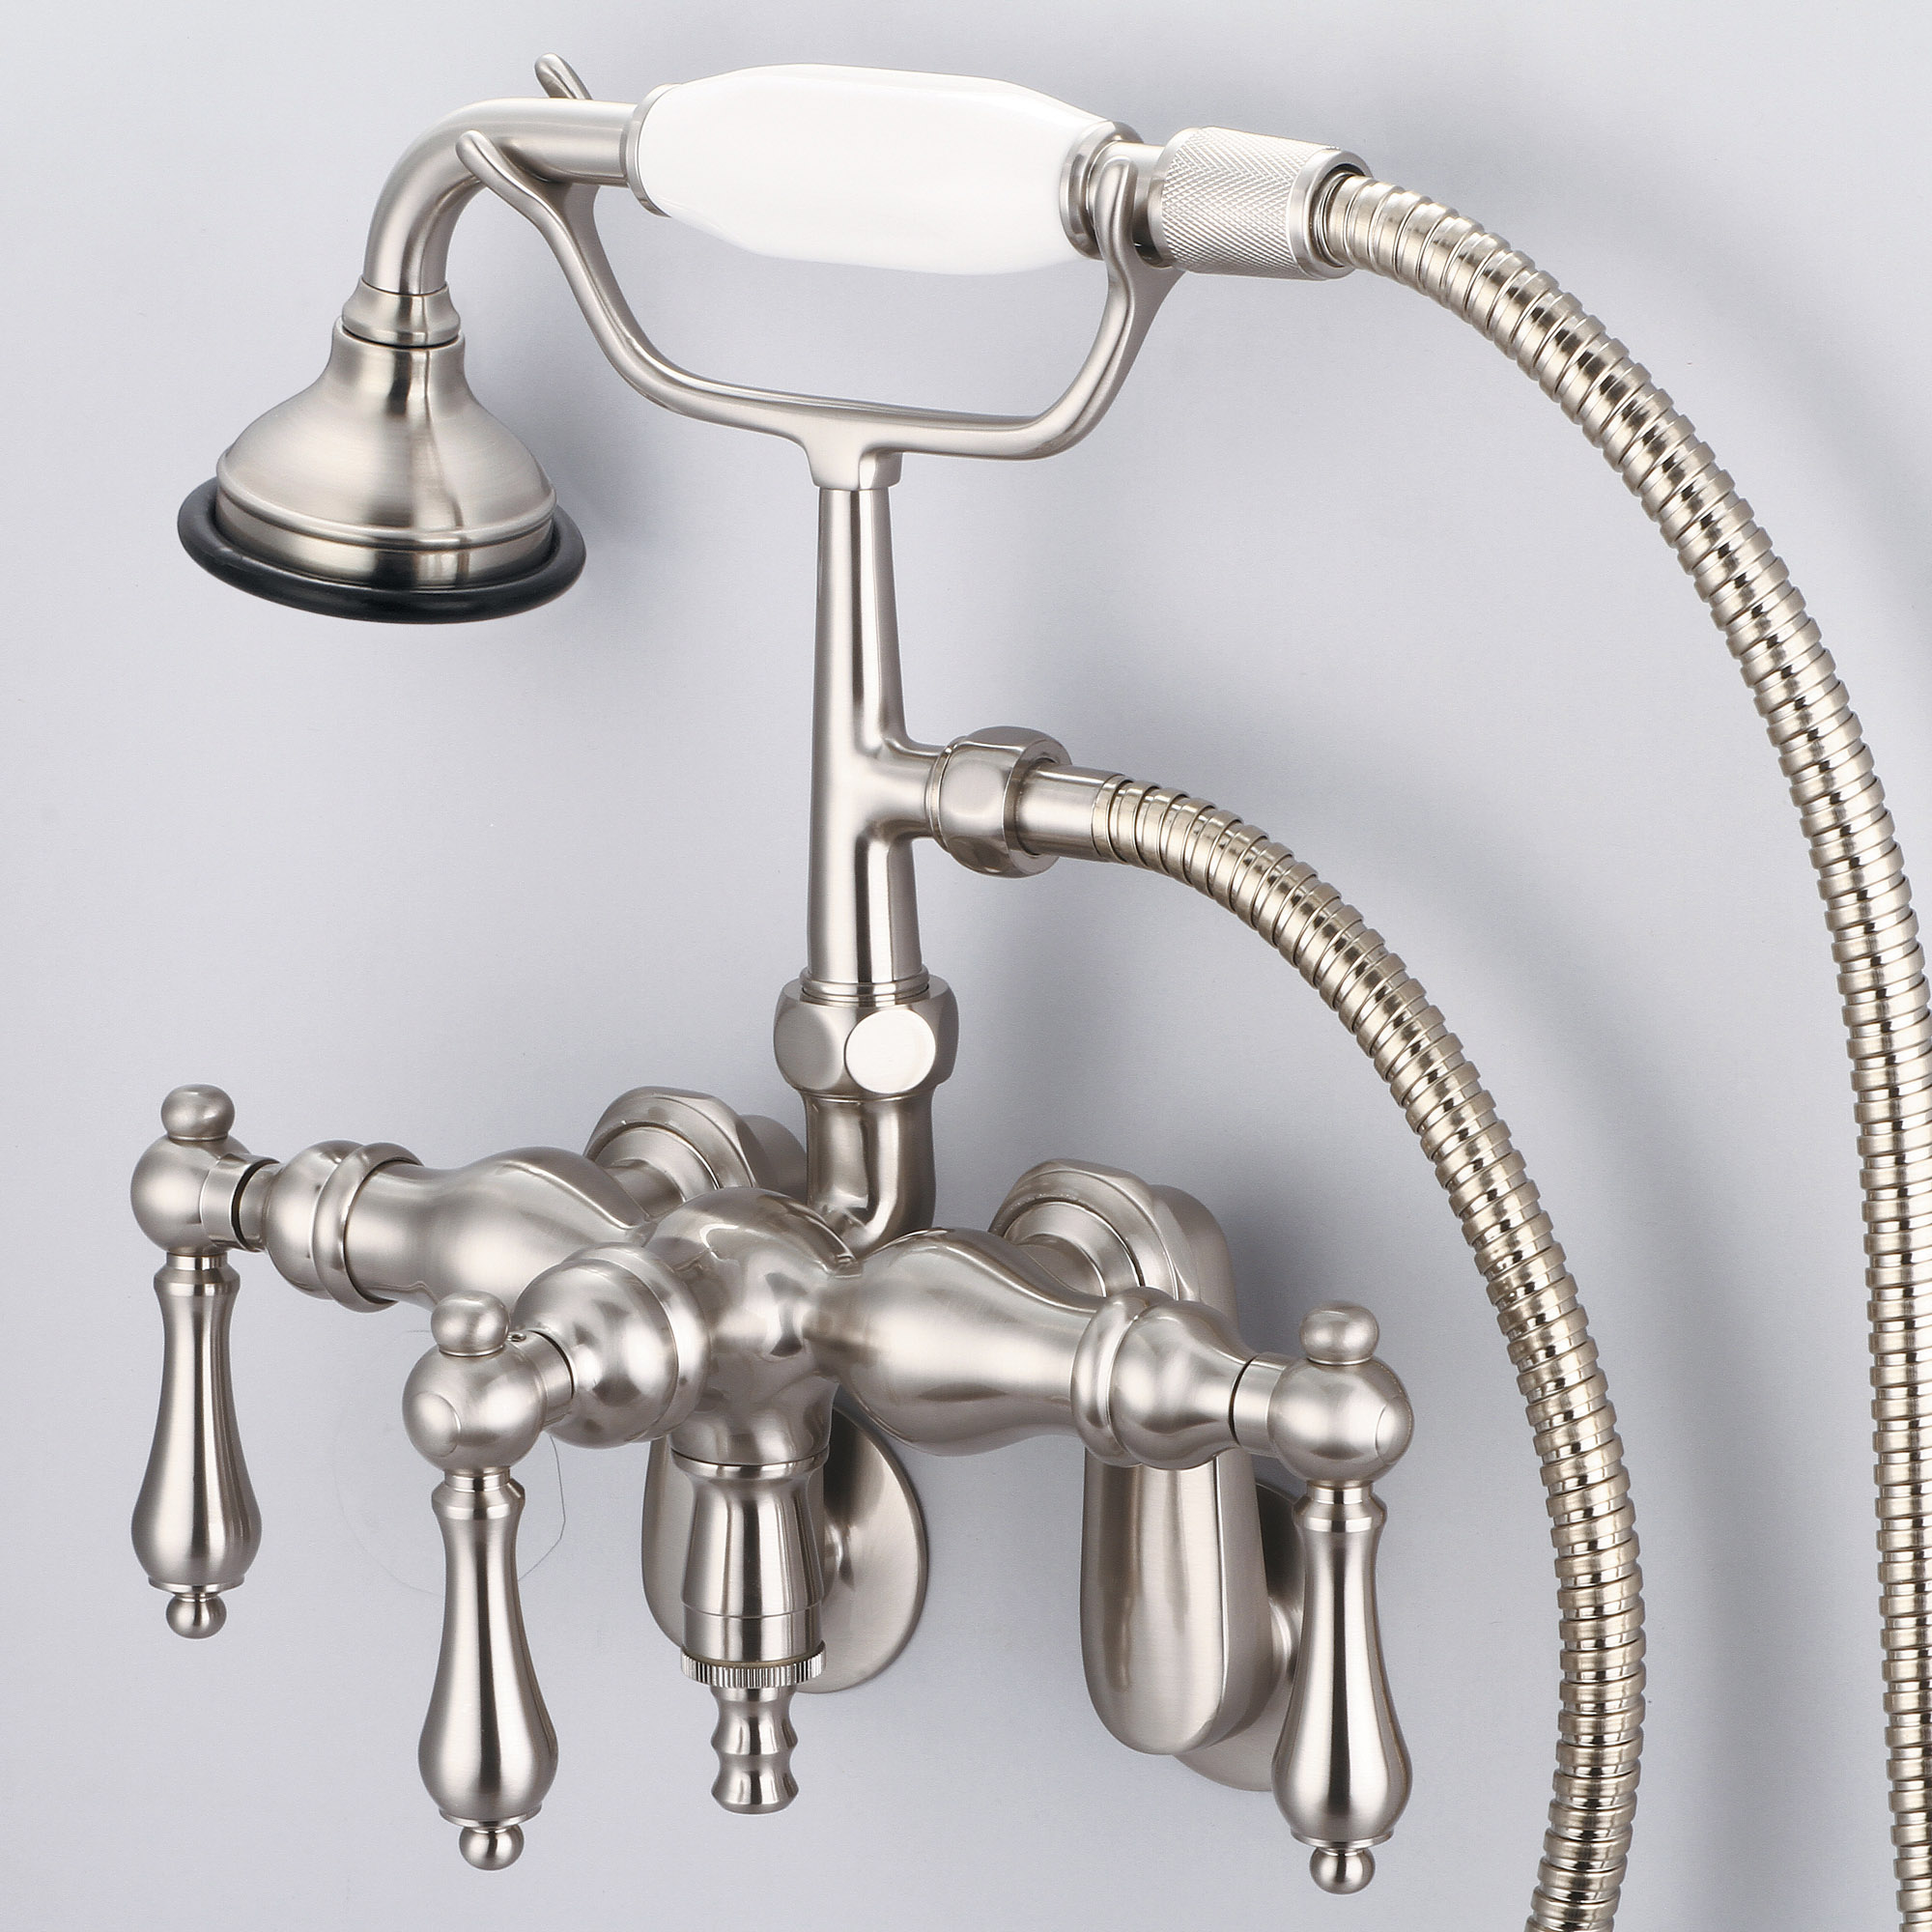 Vintage Classic Adjustable Center Wall Mount Tub Faucet With Down Spout, Swivel Wall Connector & Handheld Shower in Brushed Nickel Finish With Metal Lever Handles Without Labels